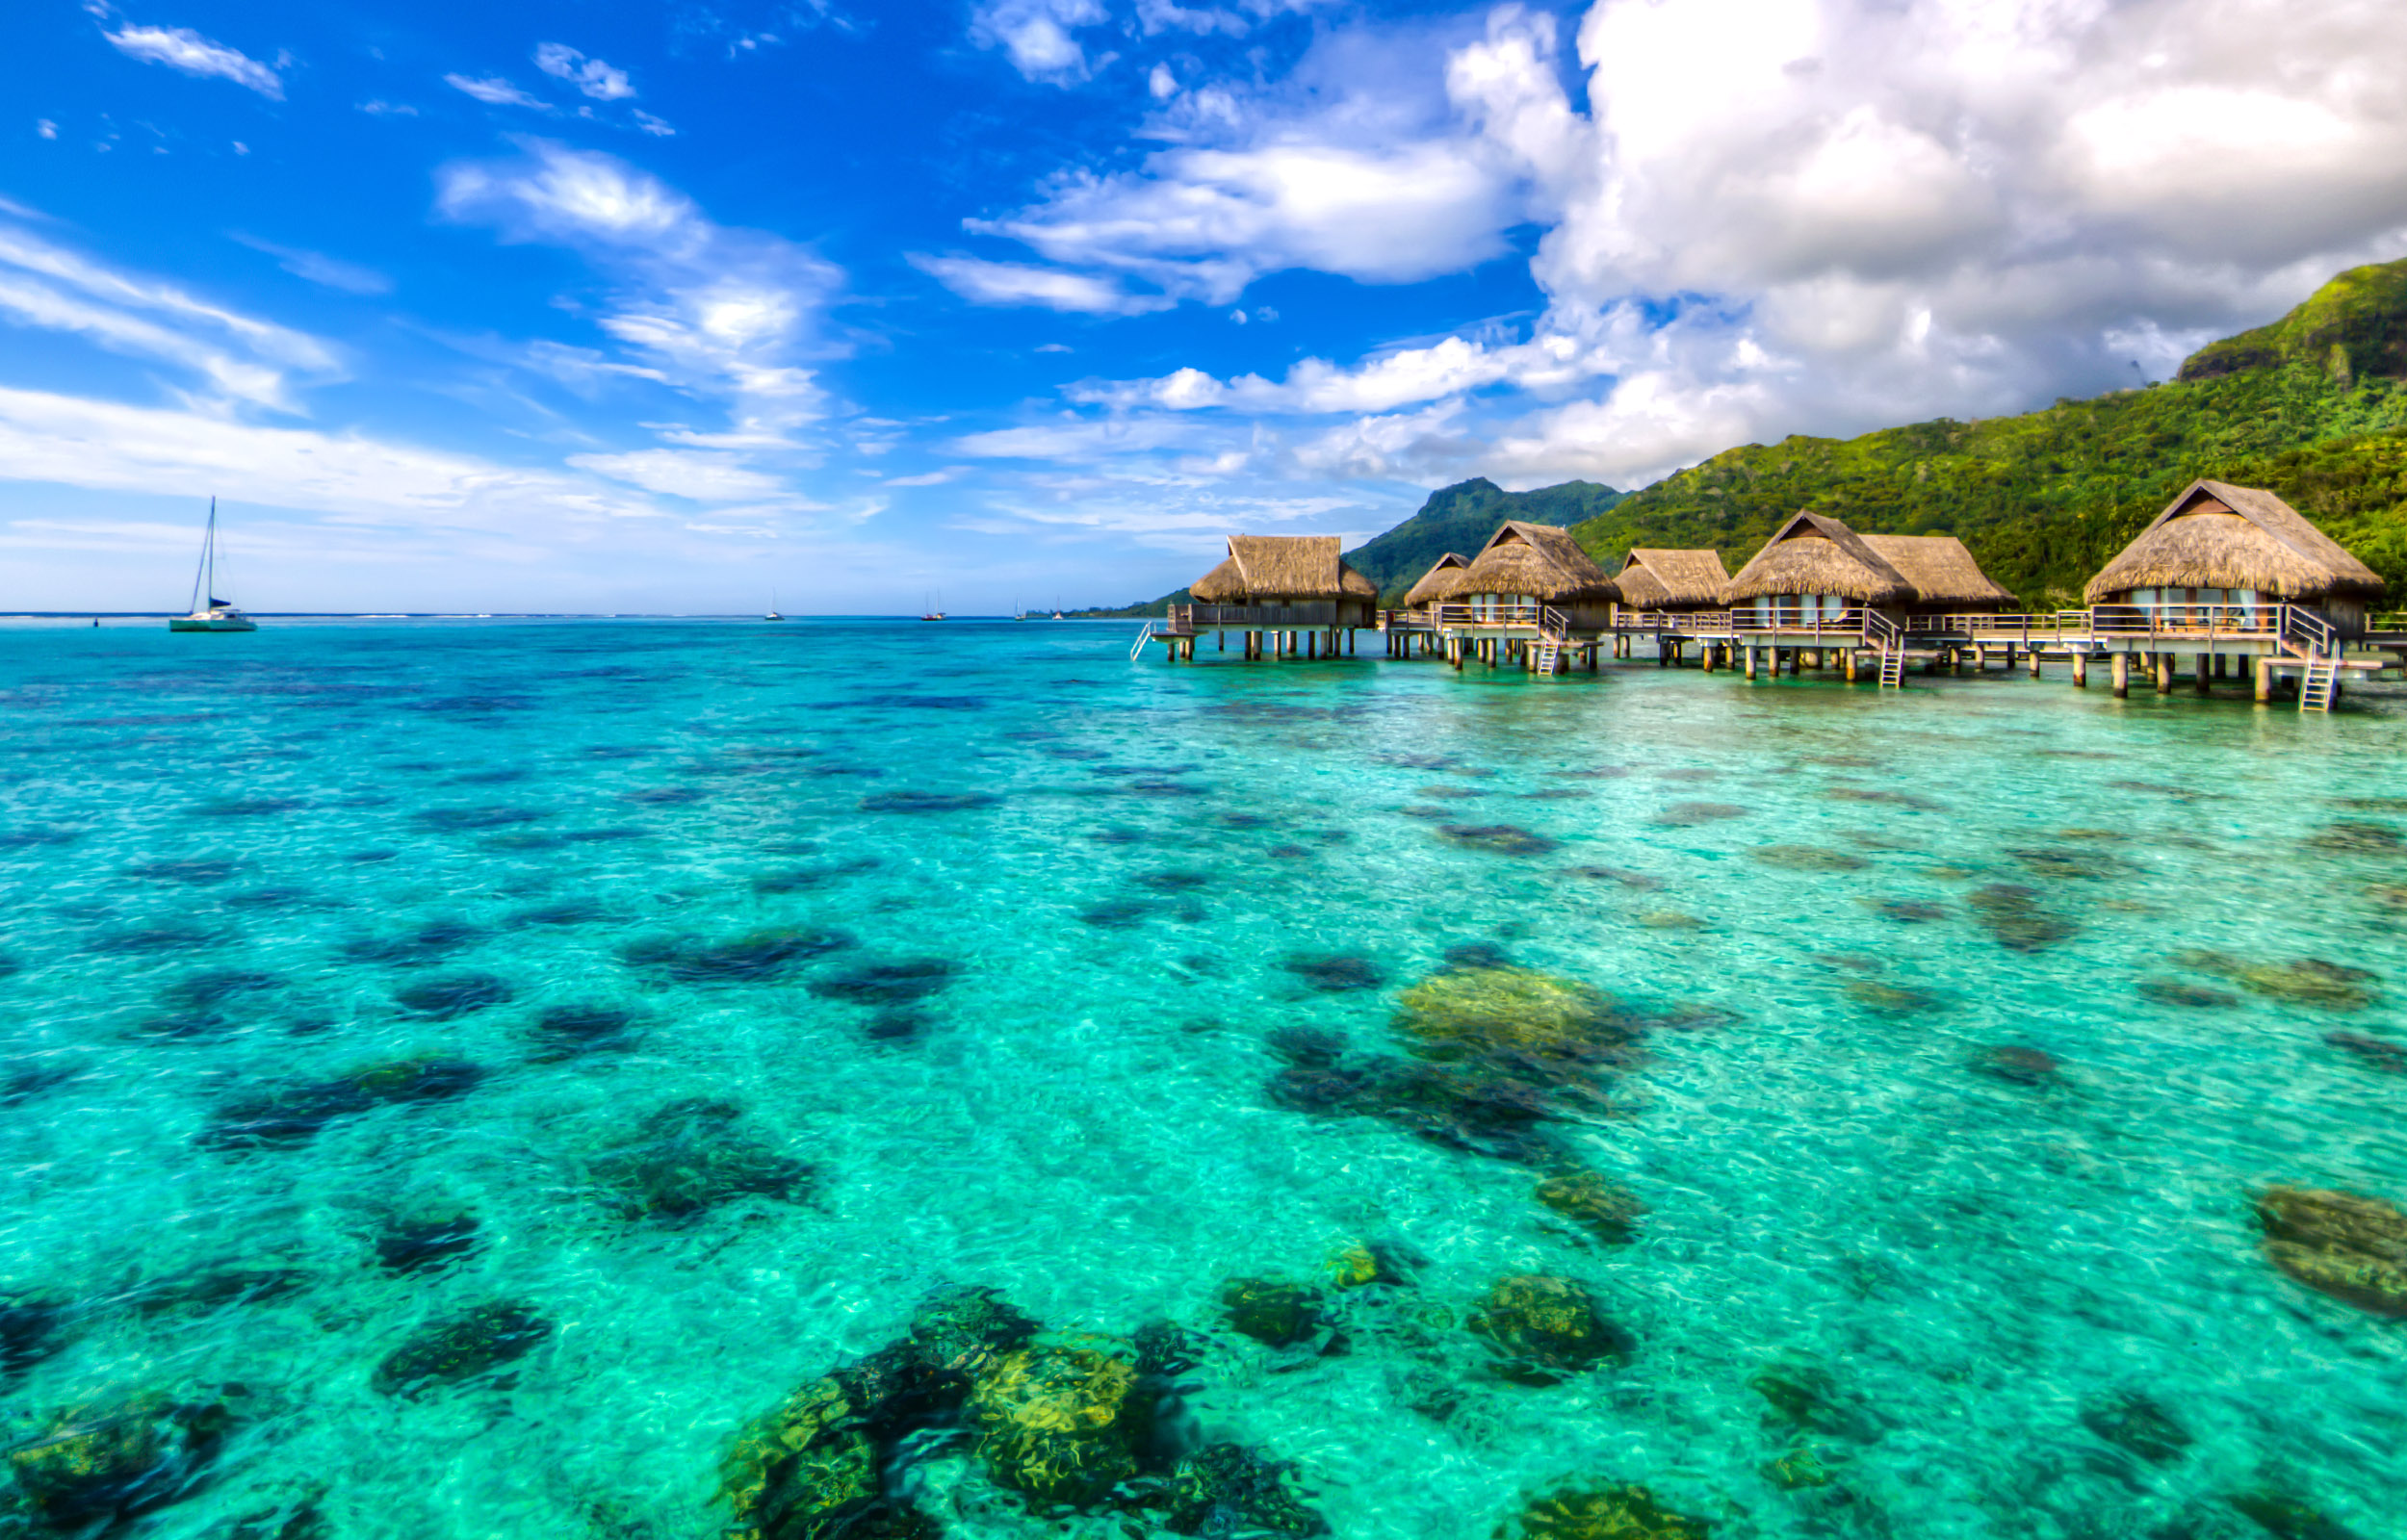 View of over-water bungalows and shallow blue waters with coral visible on the ocean floor in Tahiti